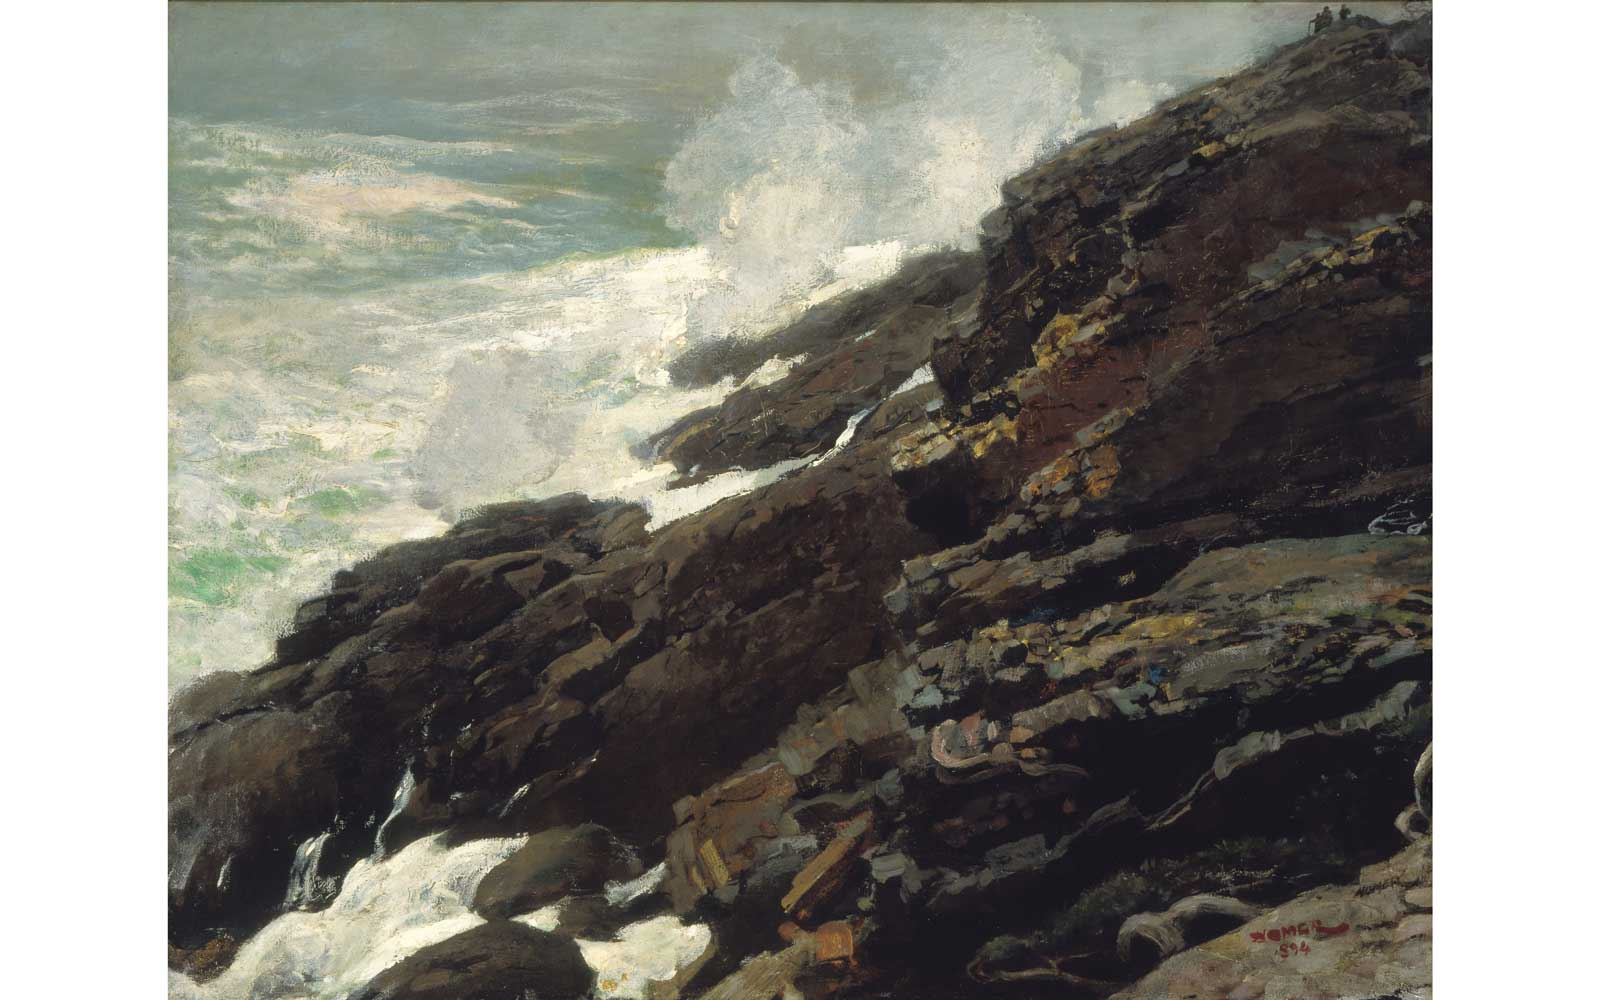 High Cliff, Coast of Maine, 1894, oil on canvas by Winslow Homer. Smithsonian American Art Museum, Gift of William T. Evans. Photography: Smithsonian American Art Museum, Washington, DC / Art Resource, NY.